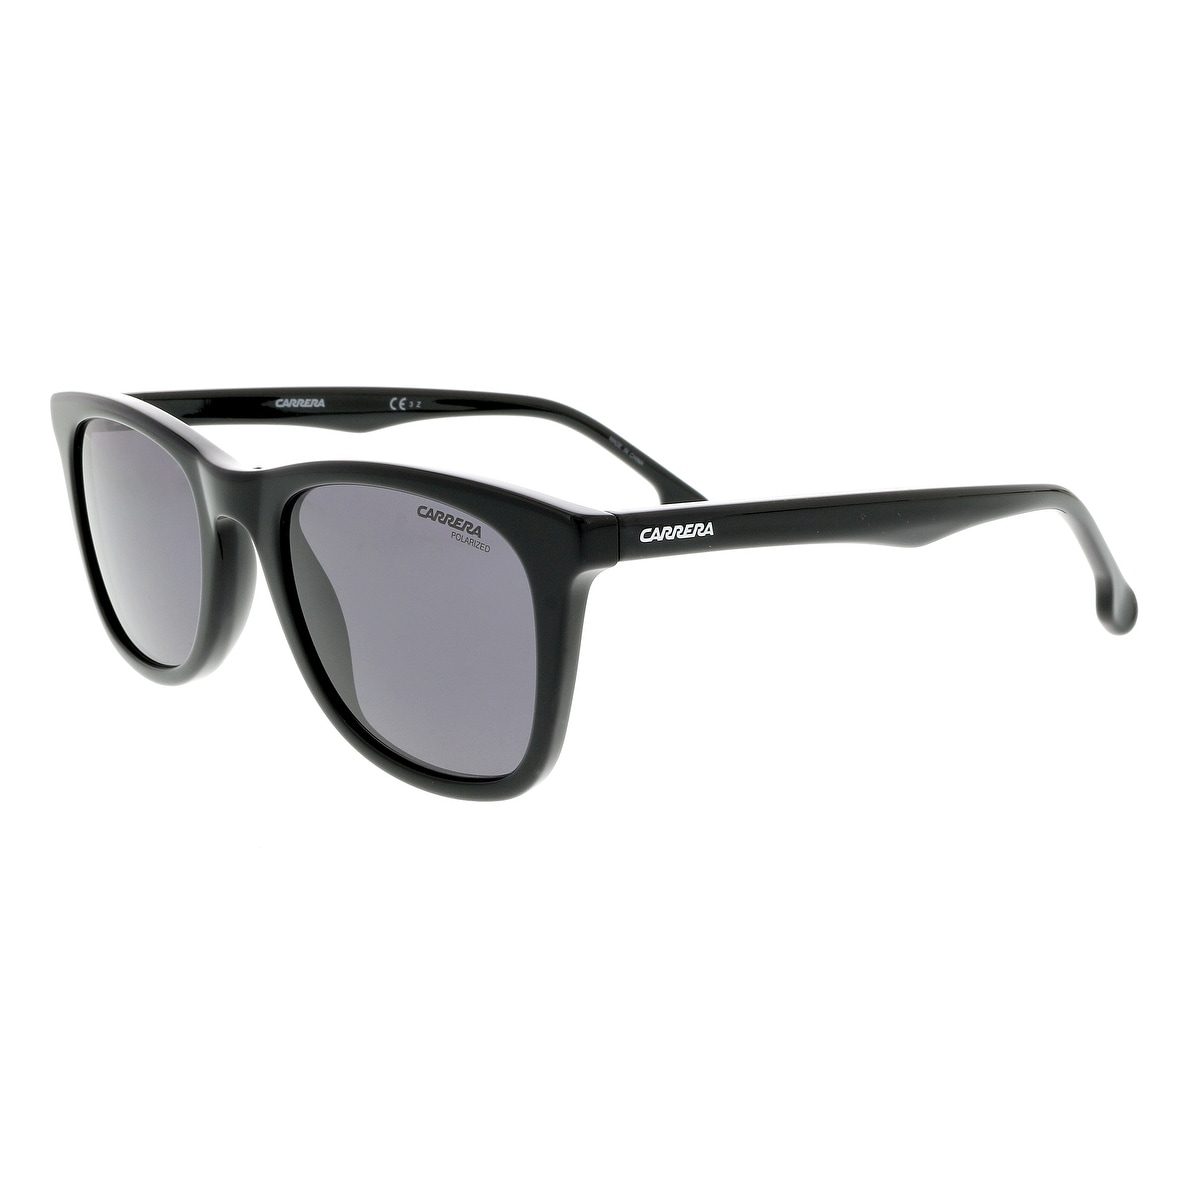 d4cf0303e99fc Carrera Men s Sunglasses